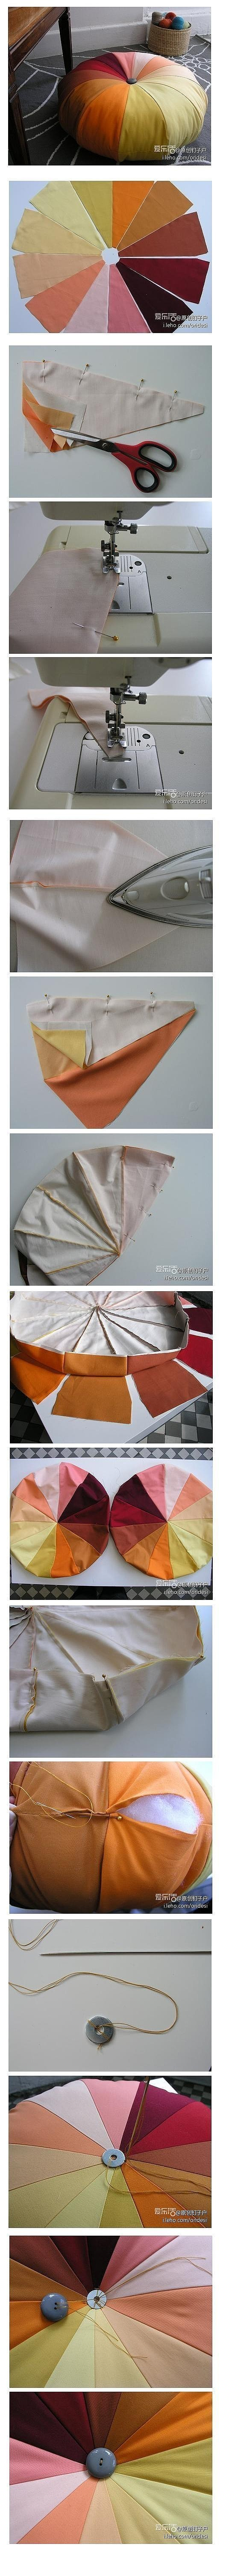 DIY Ottoman Poof. I am going to make with  outdoor fabric and use on my deck!